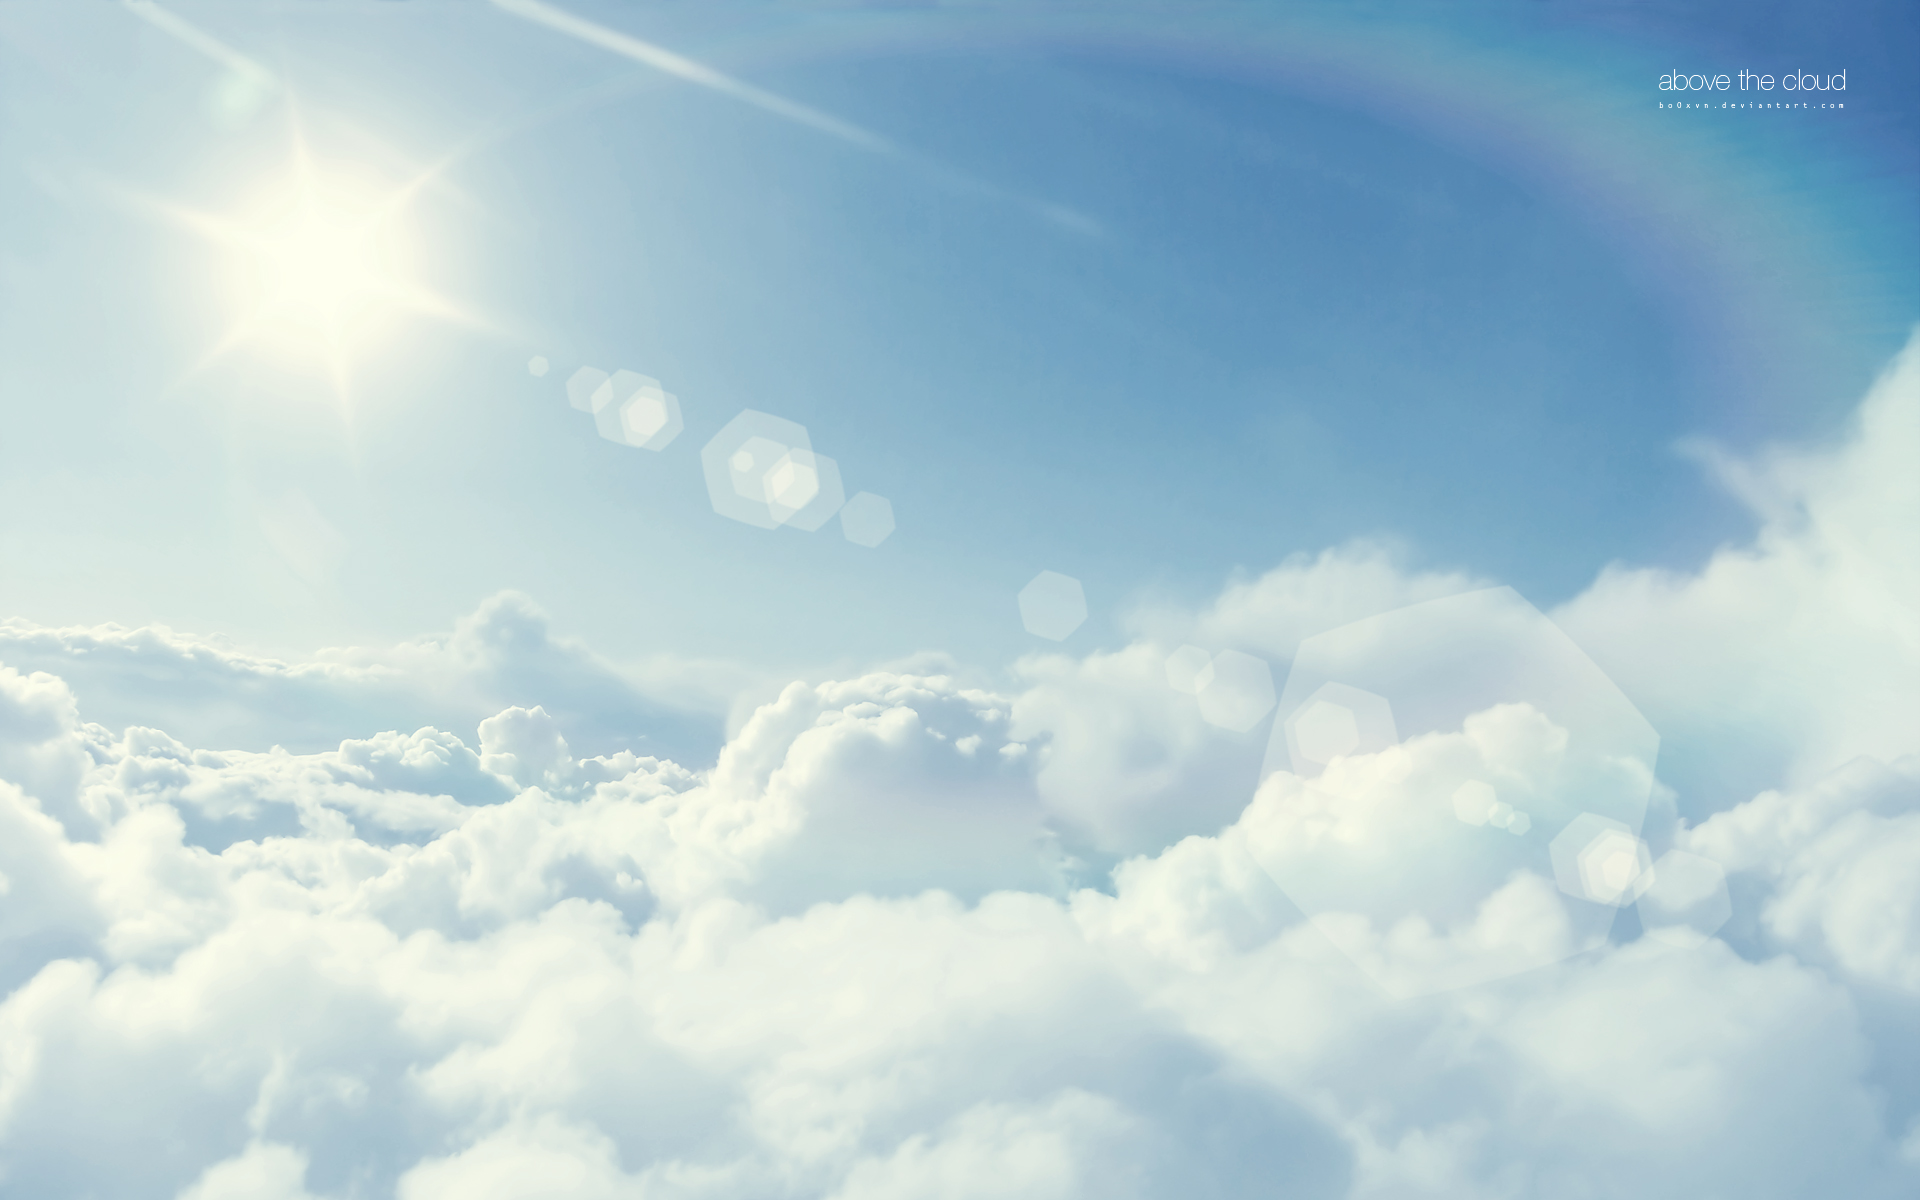 Above the clouds wallpaper Wallpaper Wide HD 1920x1200